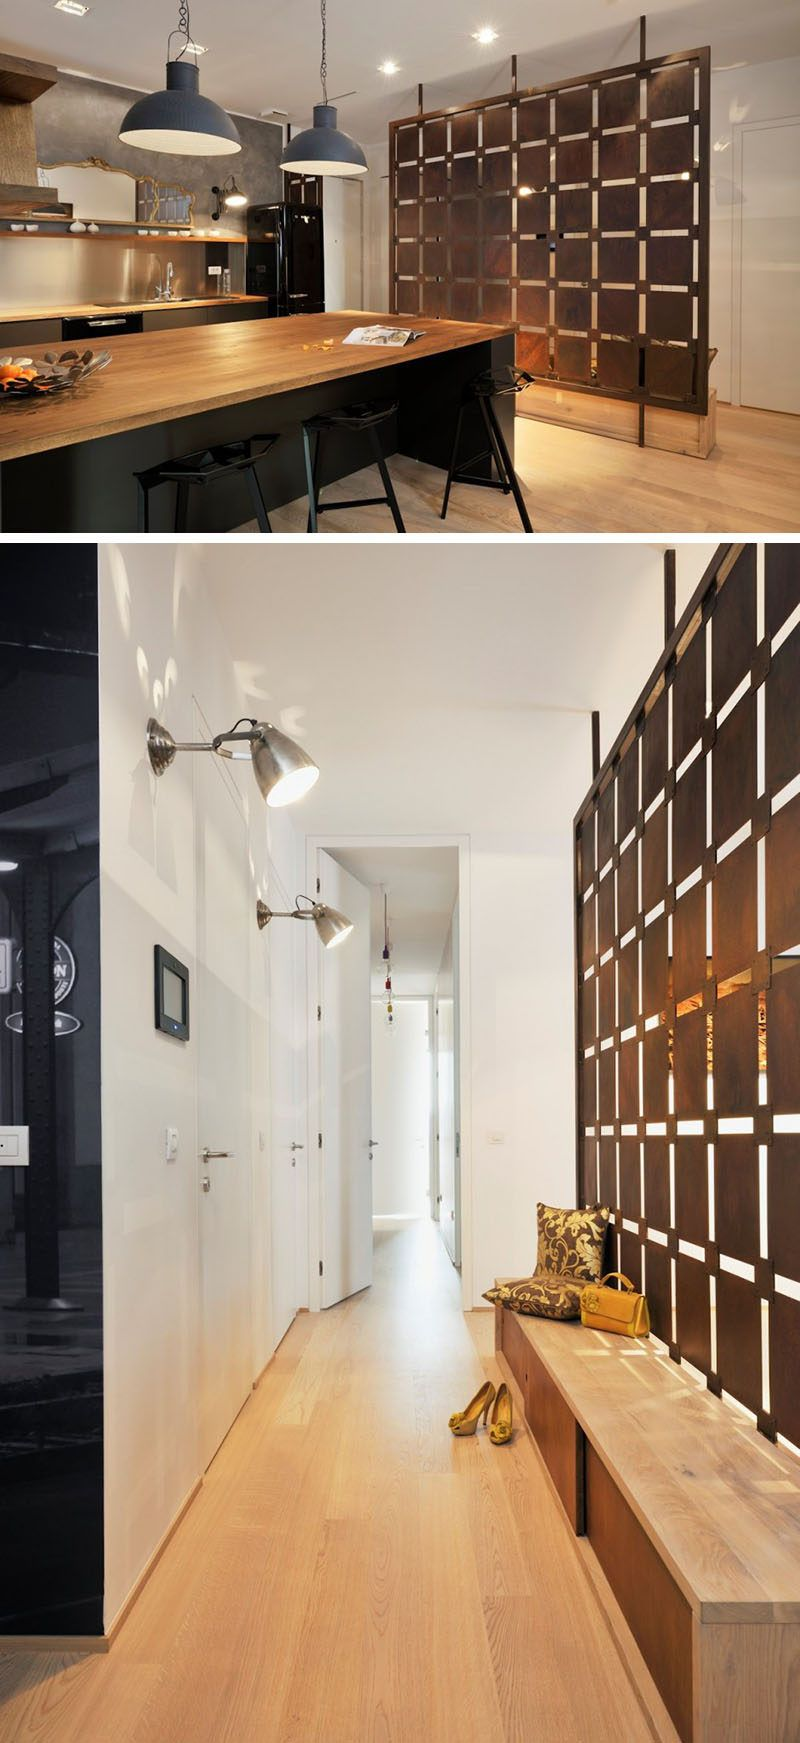 15 creative ideas for room dividers artistic geometric wall panels divide the entry way and A sleek apartment the divides rooms creatively